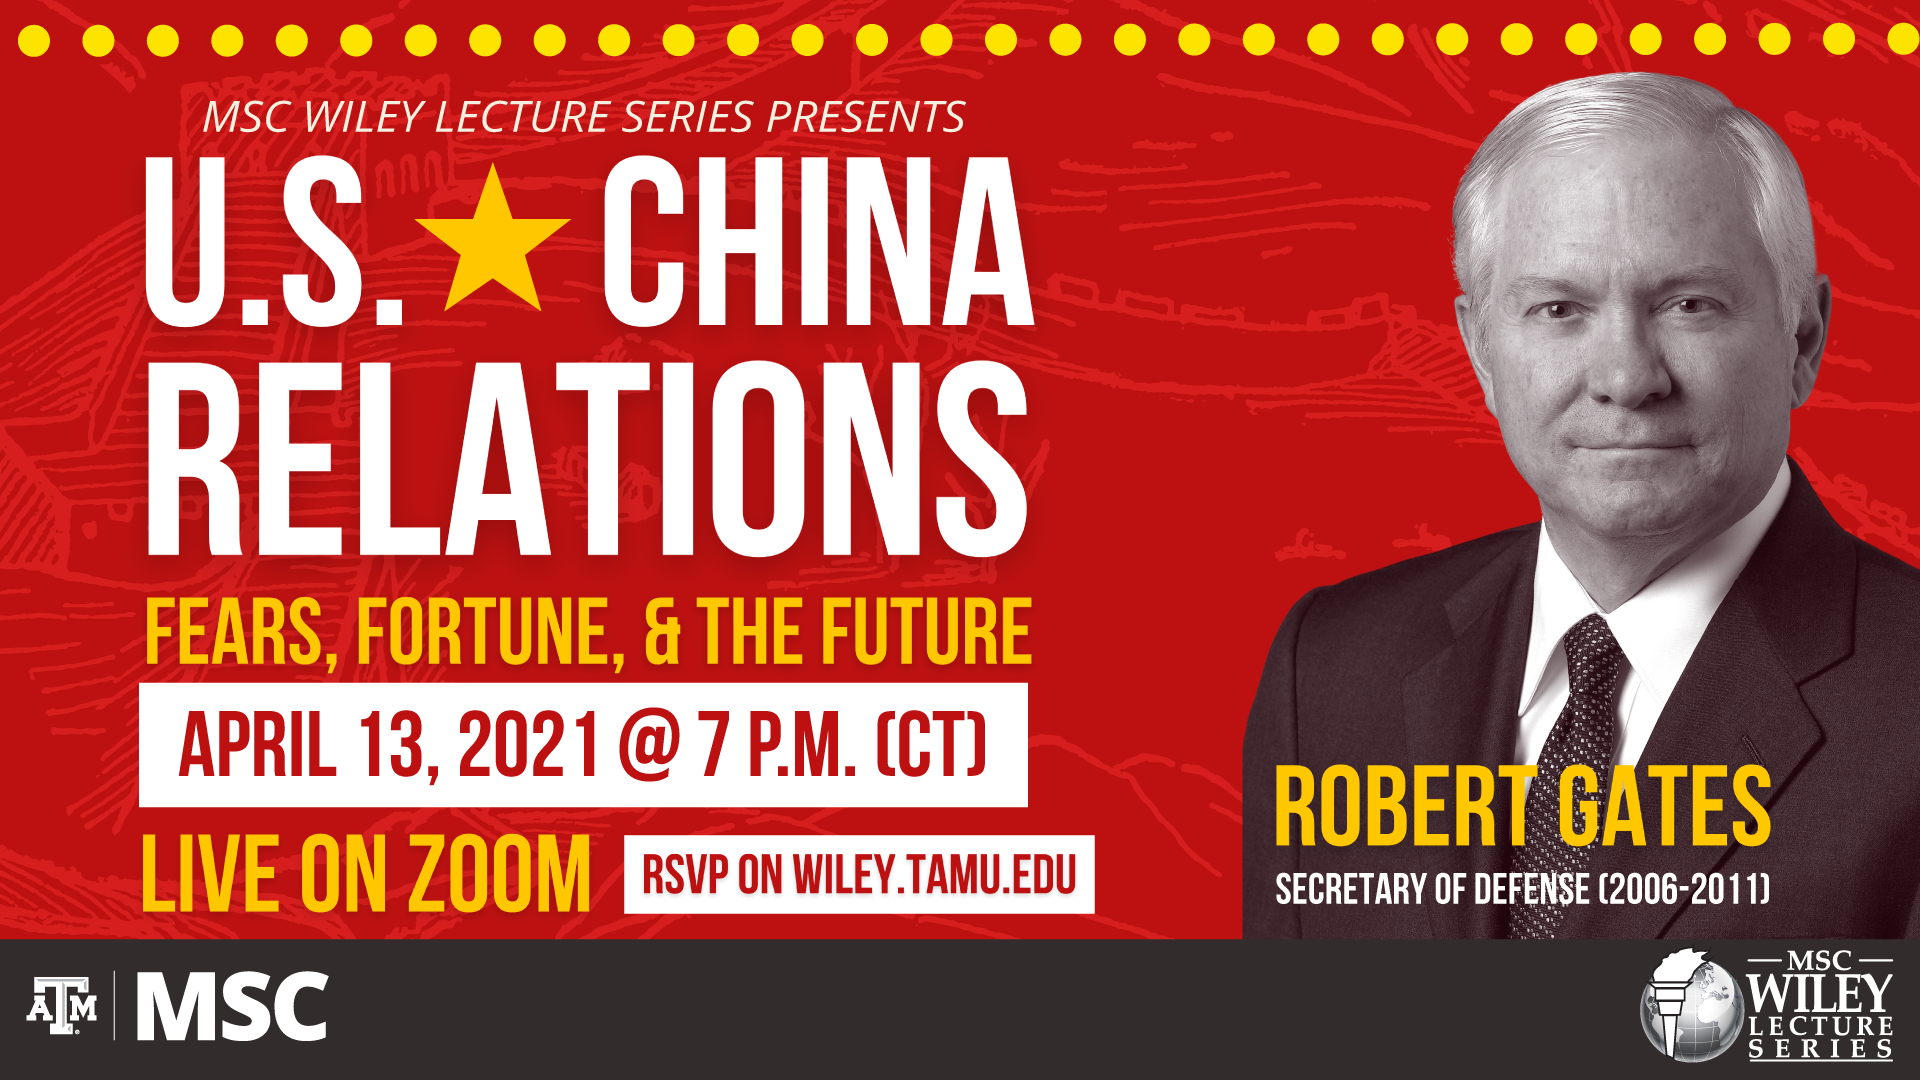 MSC Wiley Lecture Series Presents U.S. China Relations, Fears, Fortune and the Future, April 13, 2021 at 7 p.m. (central time) Live on Zoom, RSVP on wiley.tamu.edu